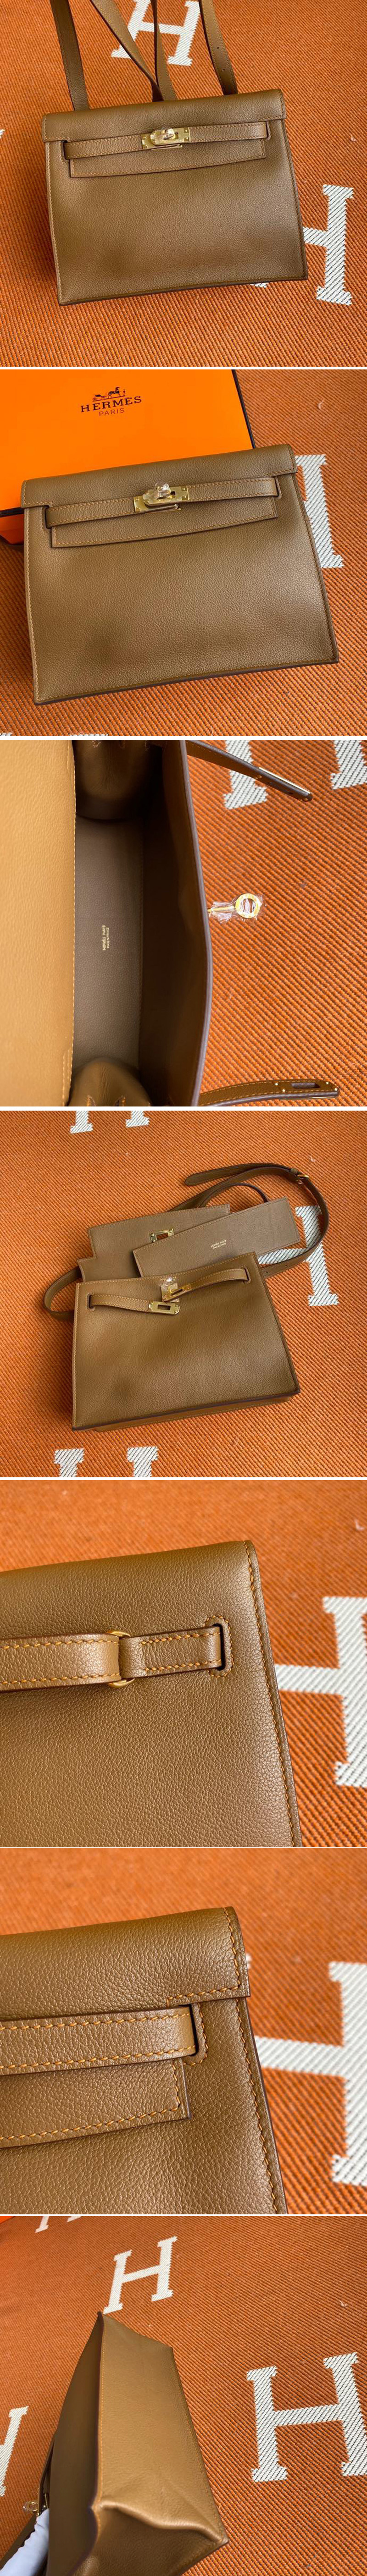 Replica Hermes Kelly Danse 22cm Bag in Brown Evercolor Leather with Gold Buckle